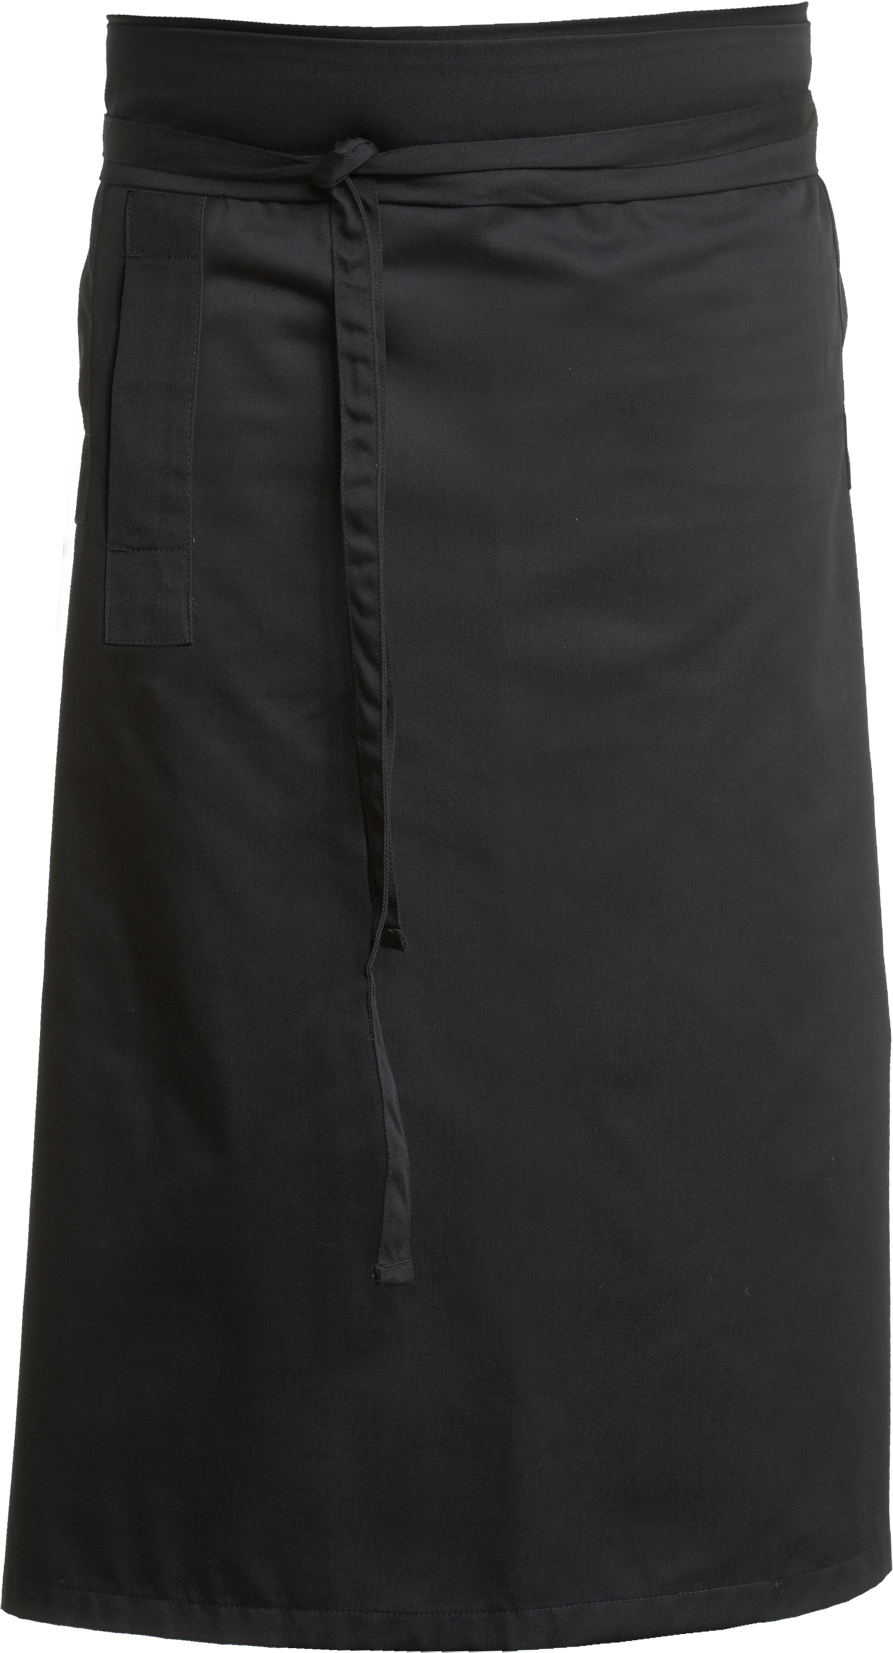 Apron, Service (318010100). - Limited stock